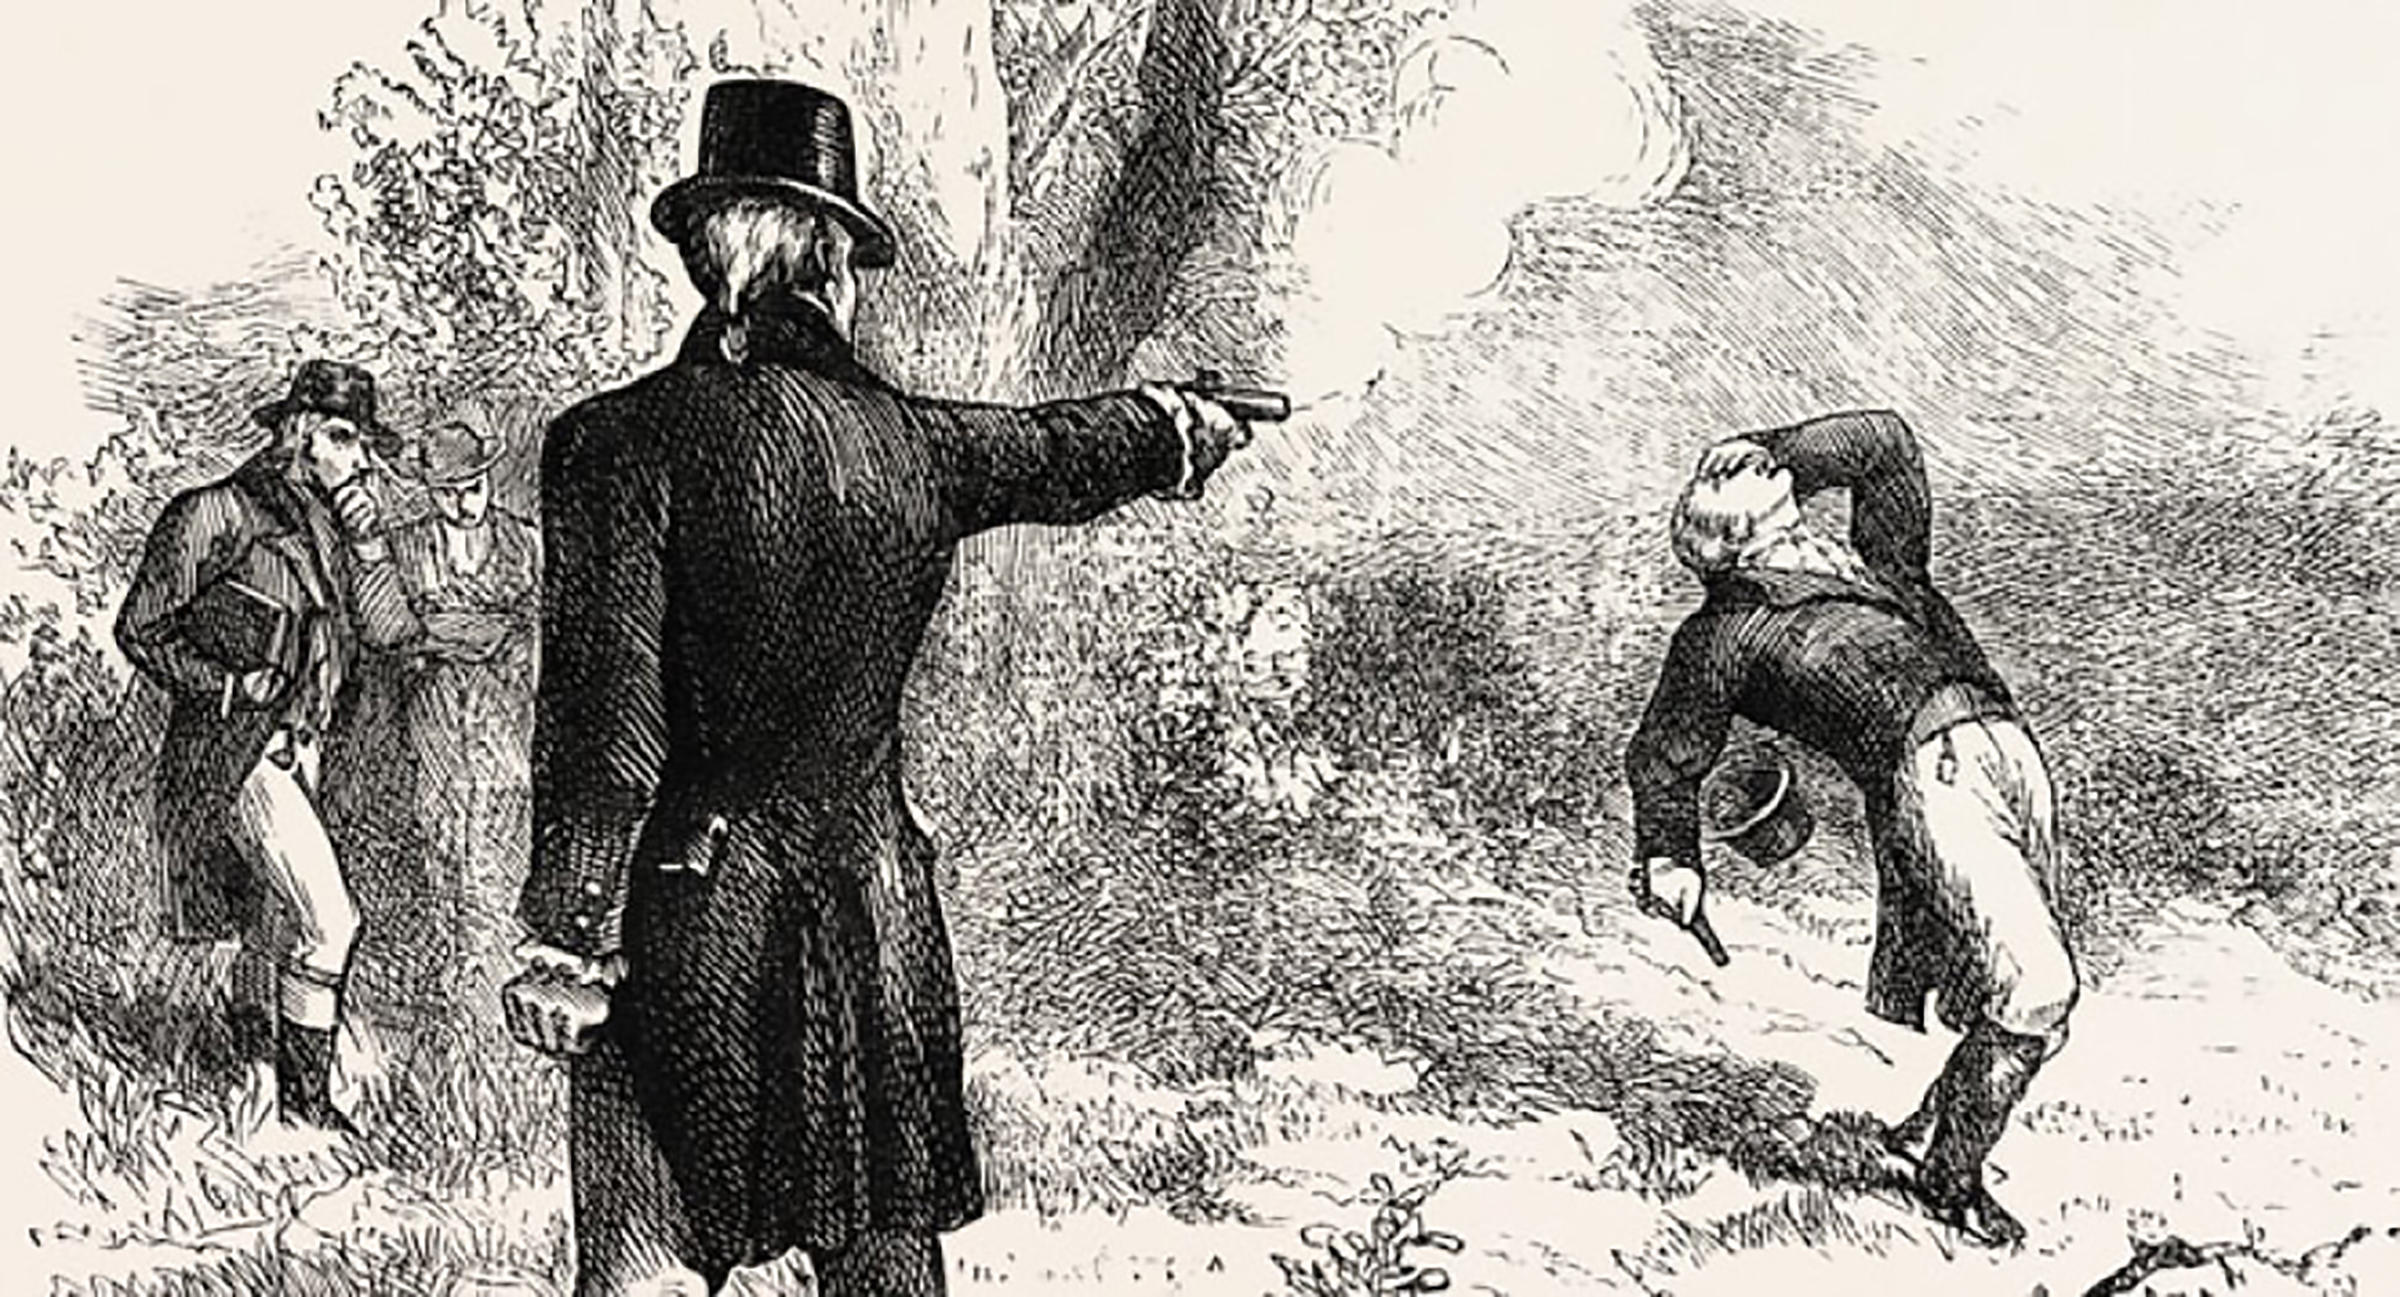 A 19th century engraving of the Burr-Hamilton duel on 11 July 1804